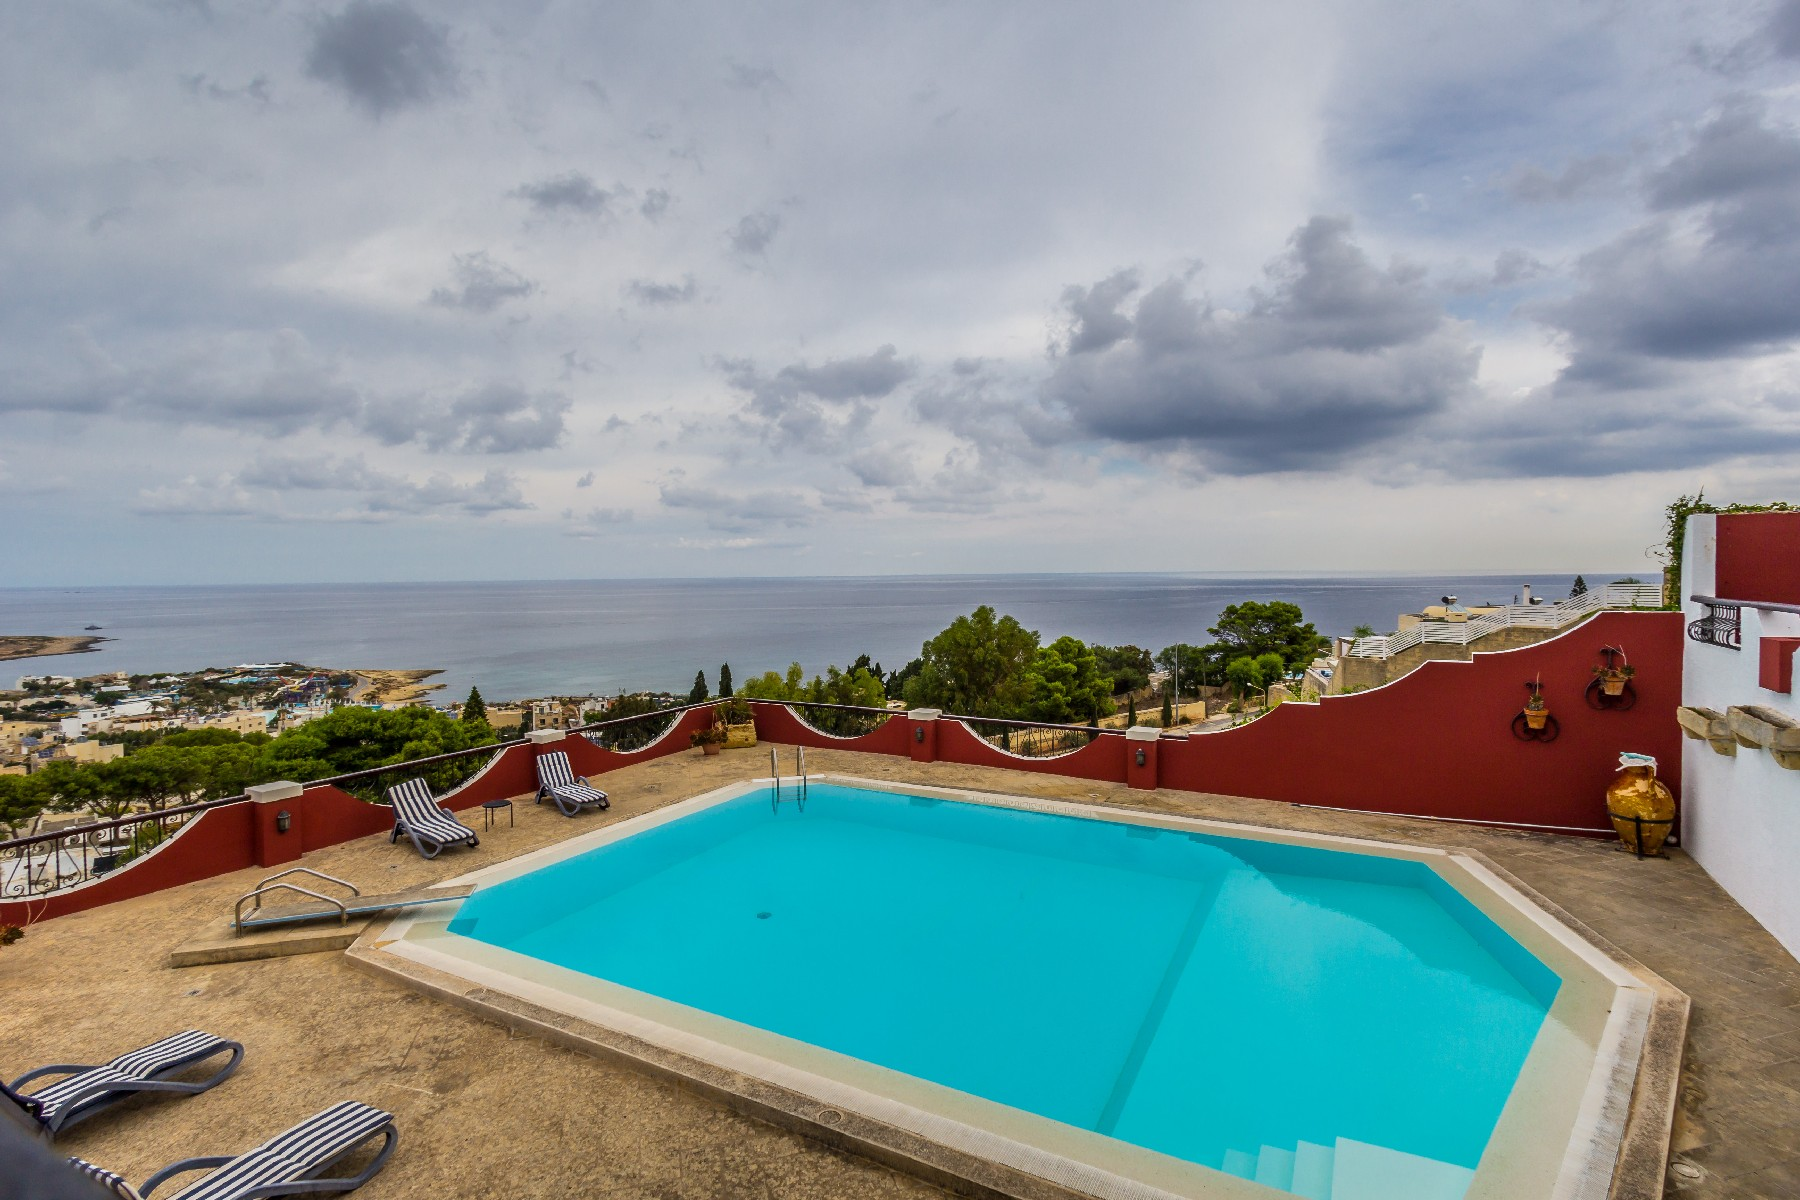 Single Family Home for Sale at Detached Seaview Villa with Pool Madliena, Malta